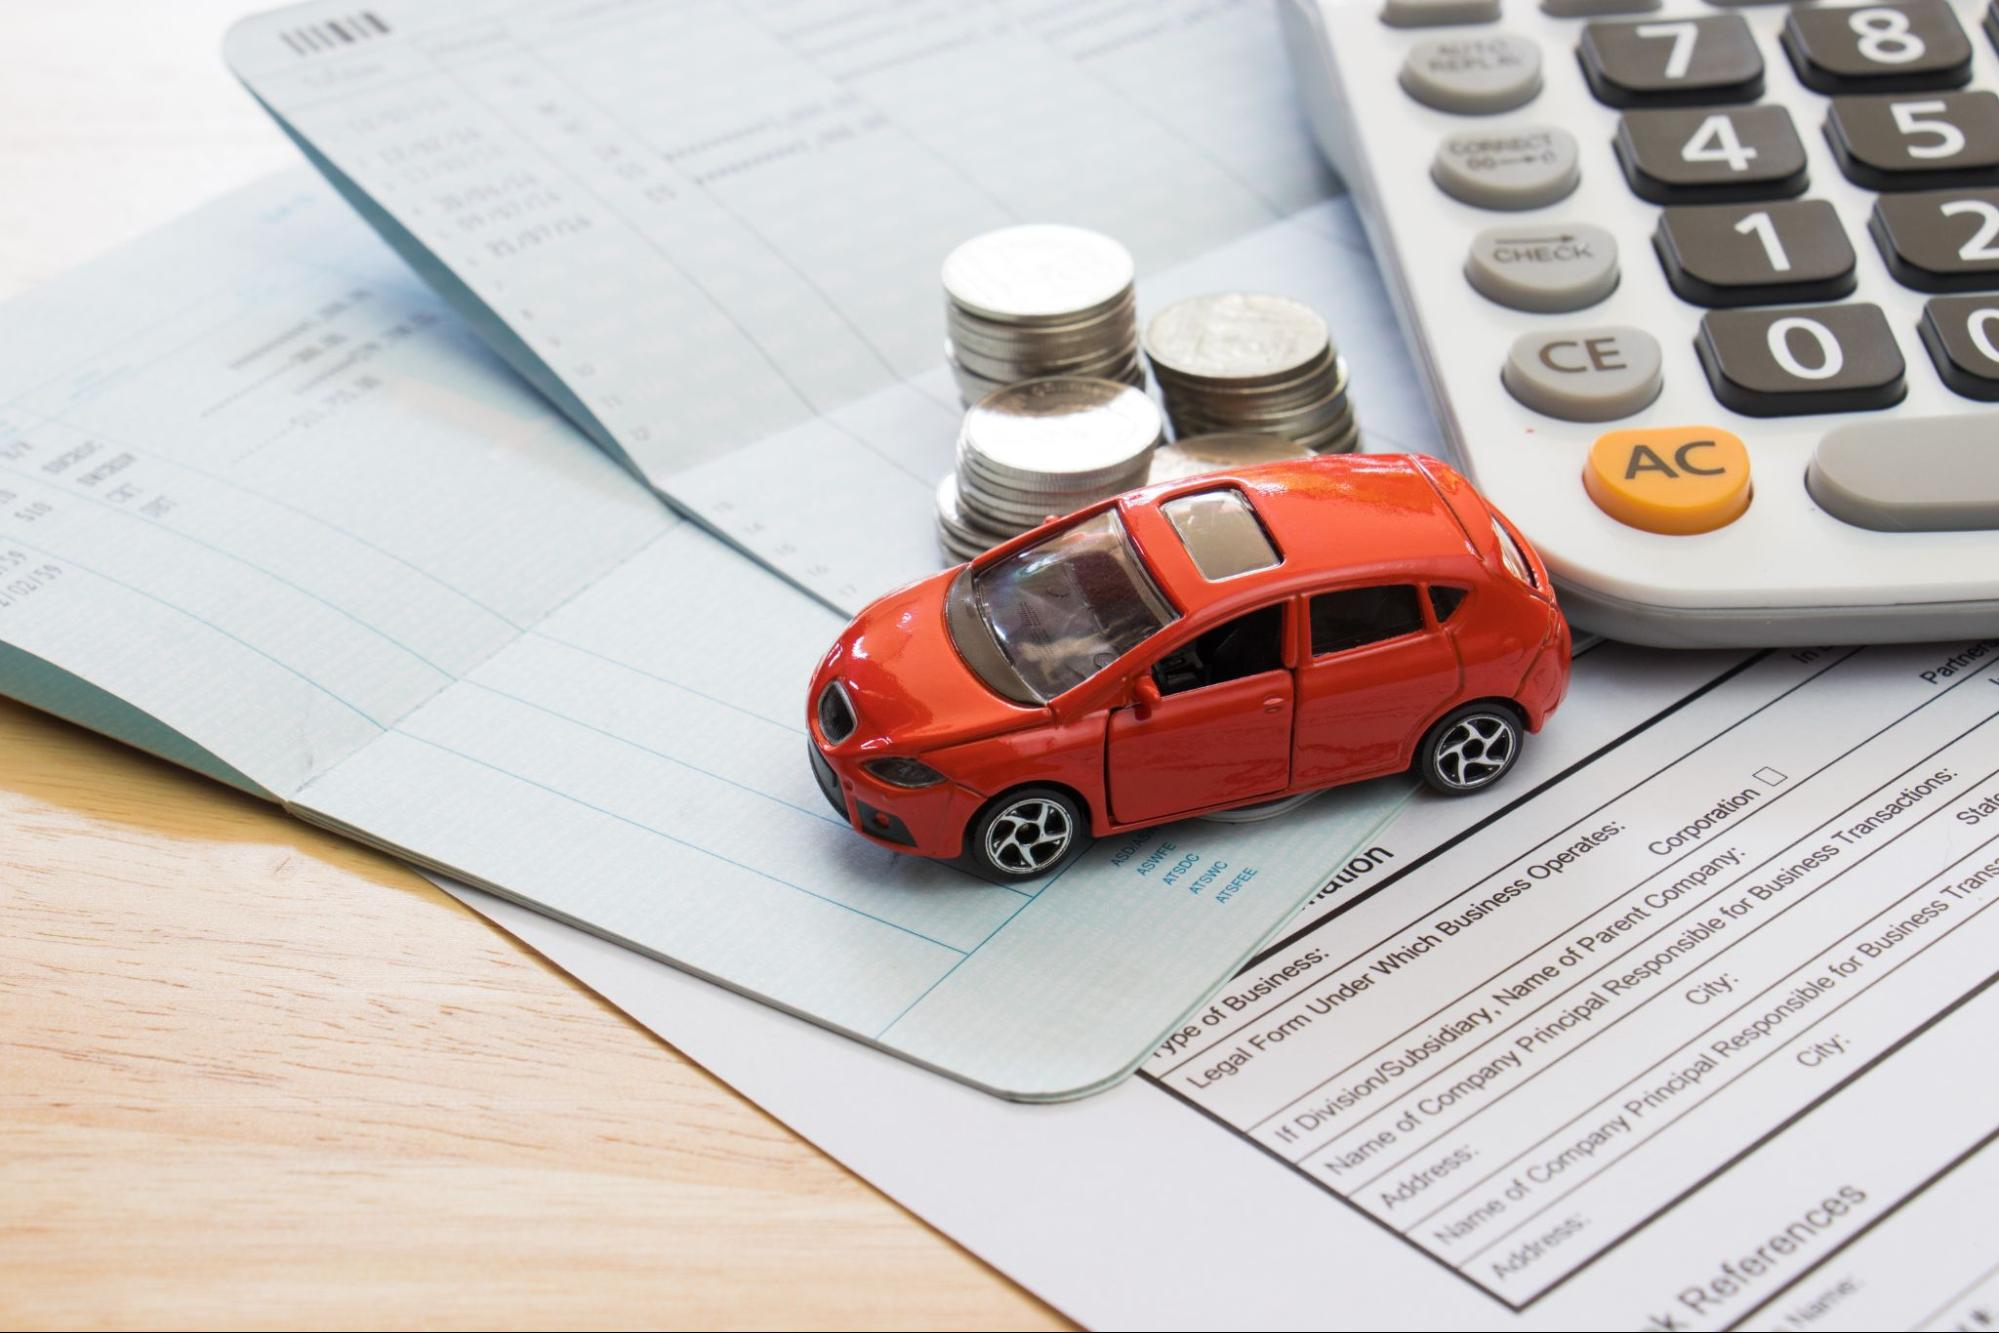 A miniature car on paper documents, coins, and a calculator, representing car insurance